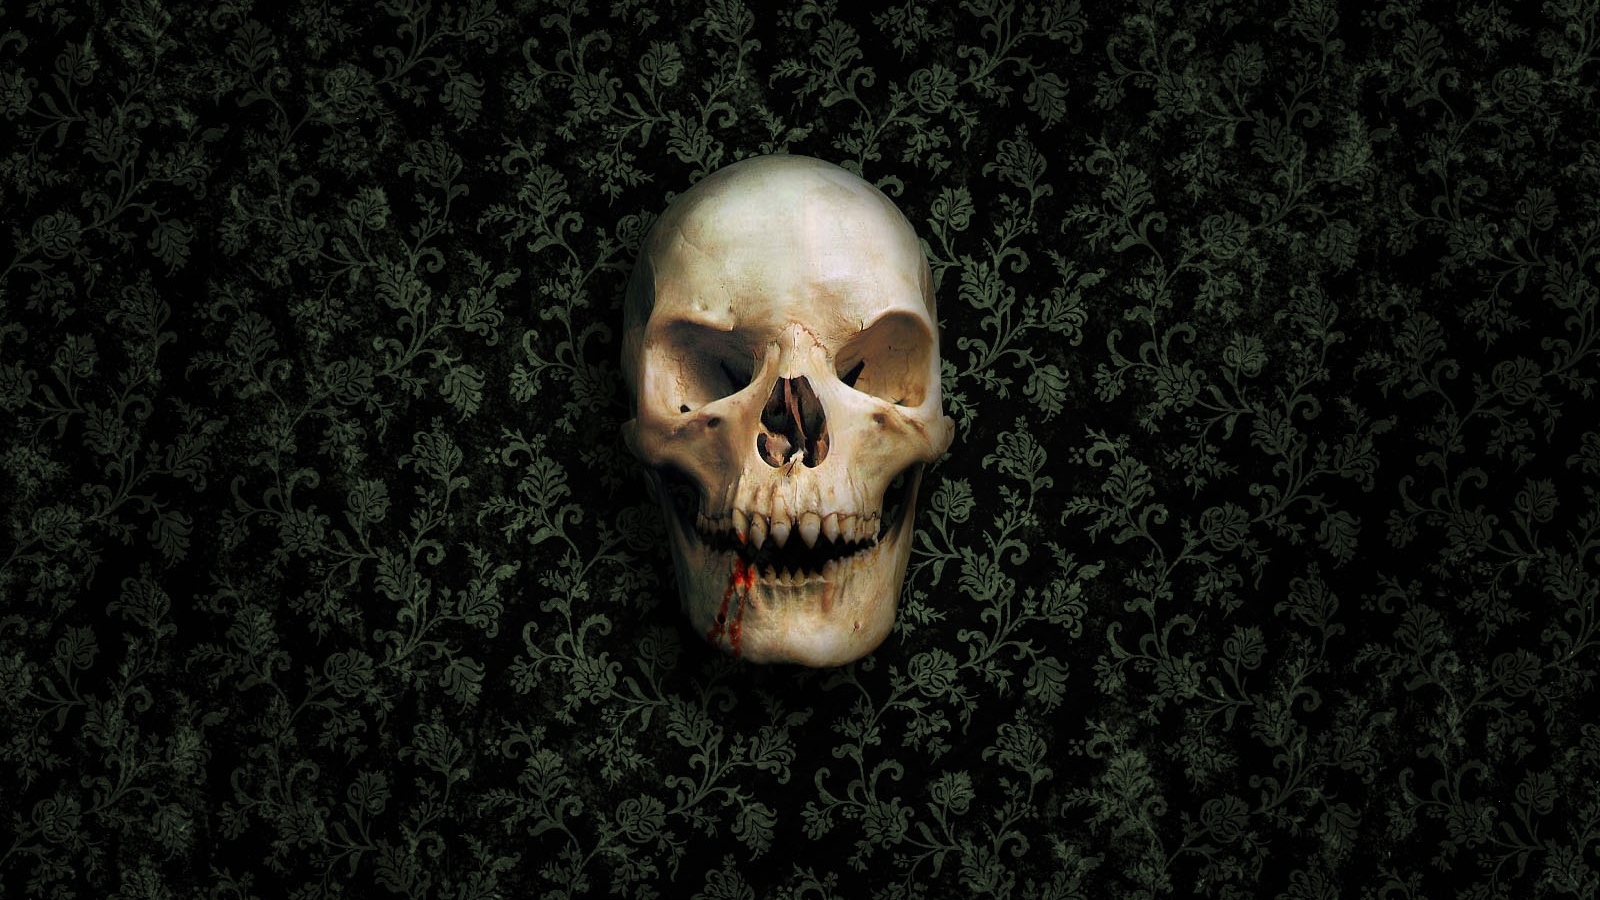 skull_skeleton_wall_green_dark_7306_1600x900.jpg